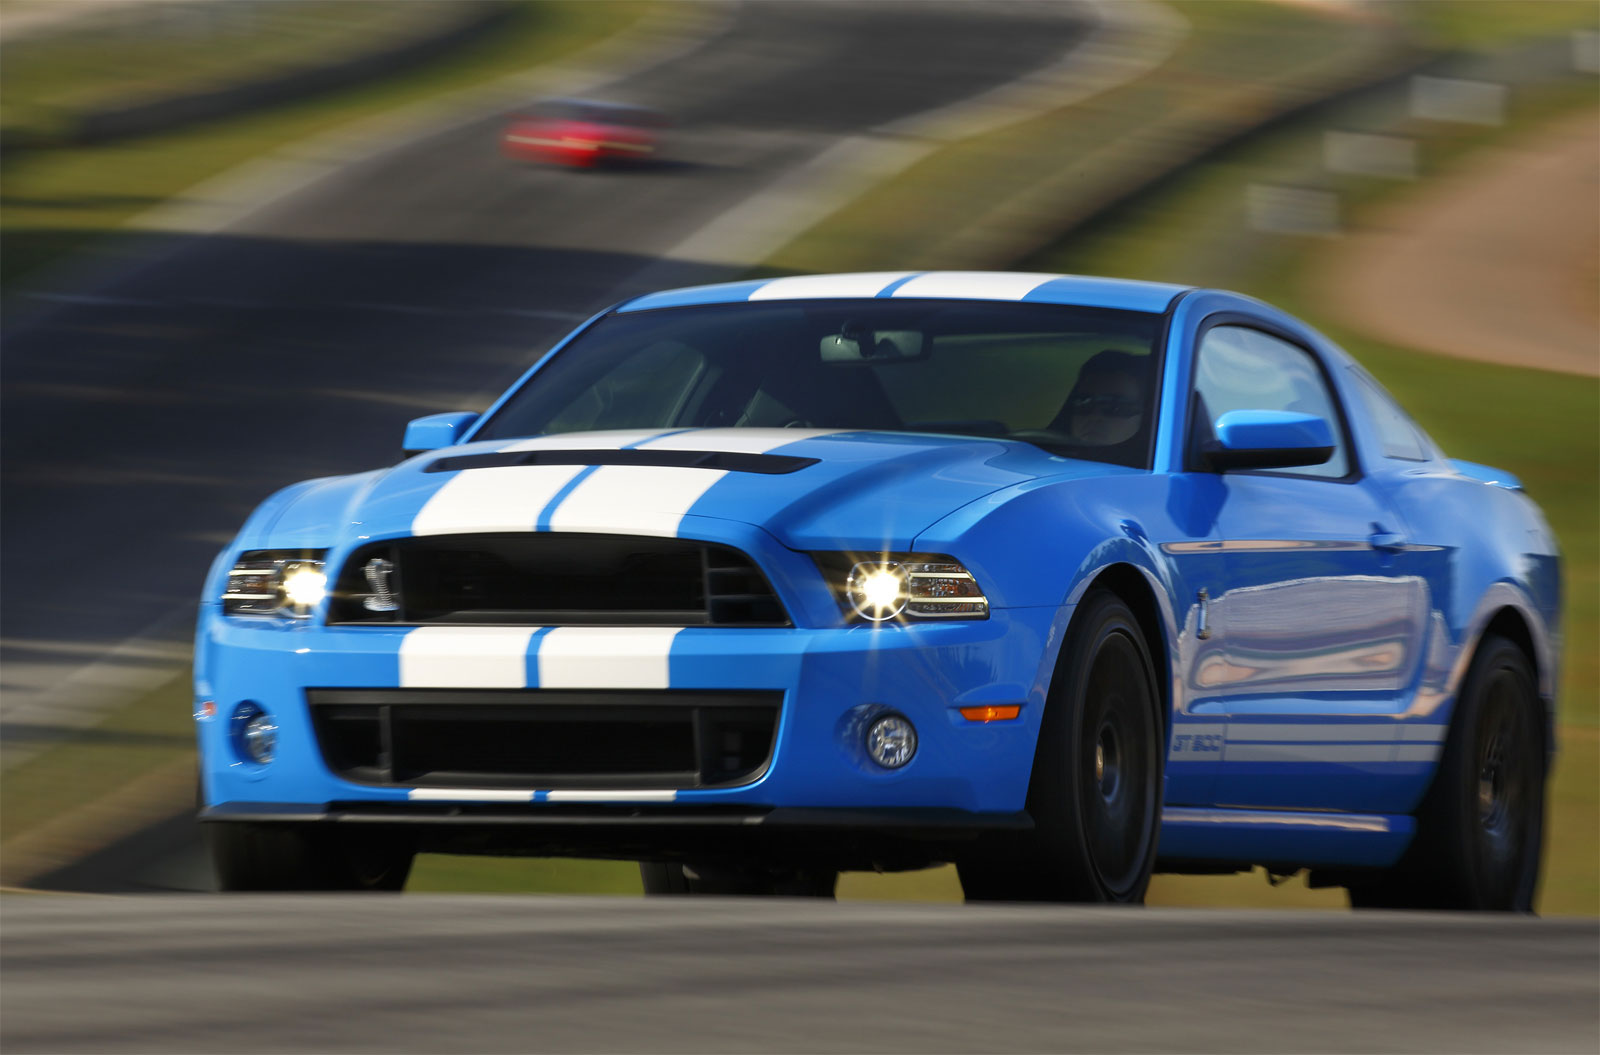 Sport Cars Ford Shelby GT500 Hd Wallpapers 2013 1600x1055